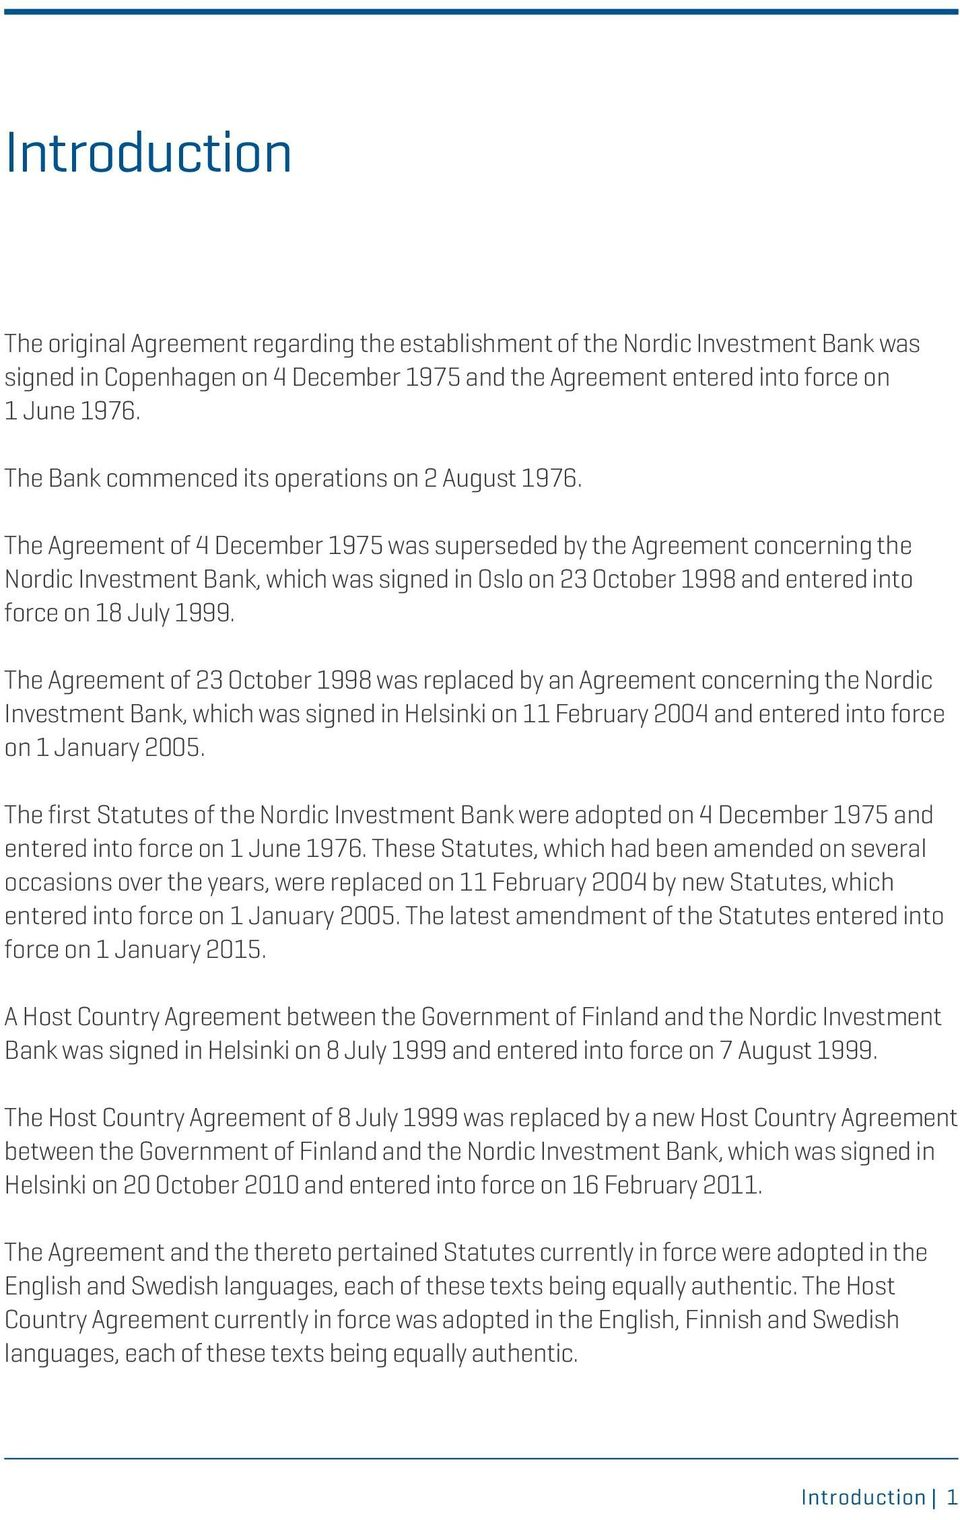 The Agreement of 4 December 1975 was superseded by the Agreement concerning the Nordic Investment Bank, which was signed in Oslo on 23 October 1998 and entered into force on 18 July 1999.